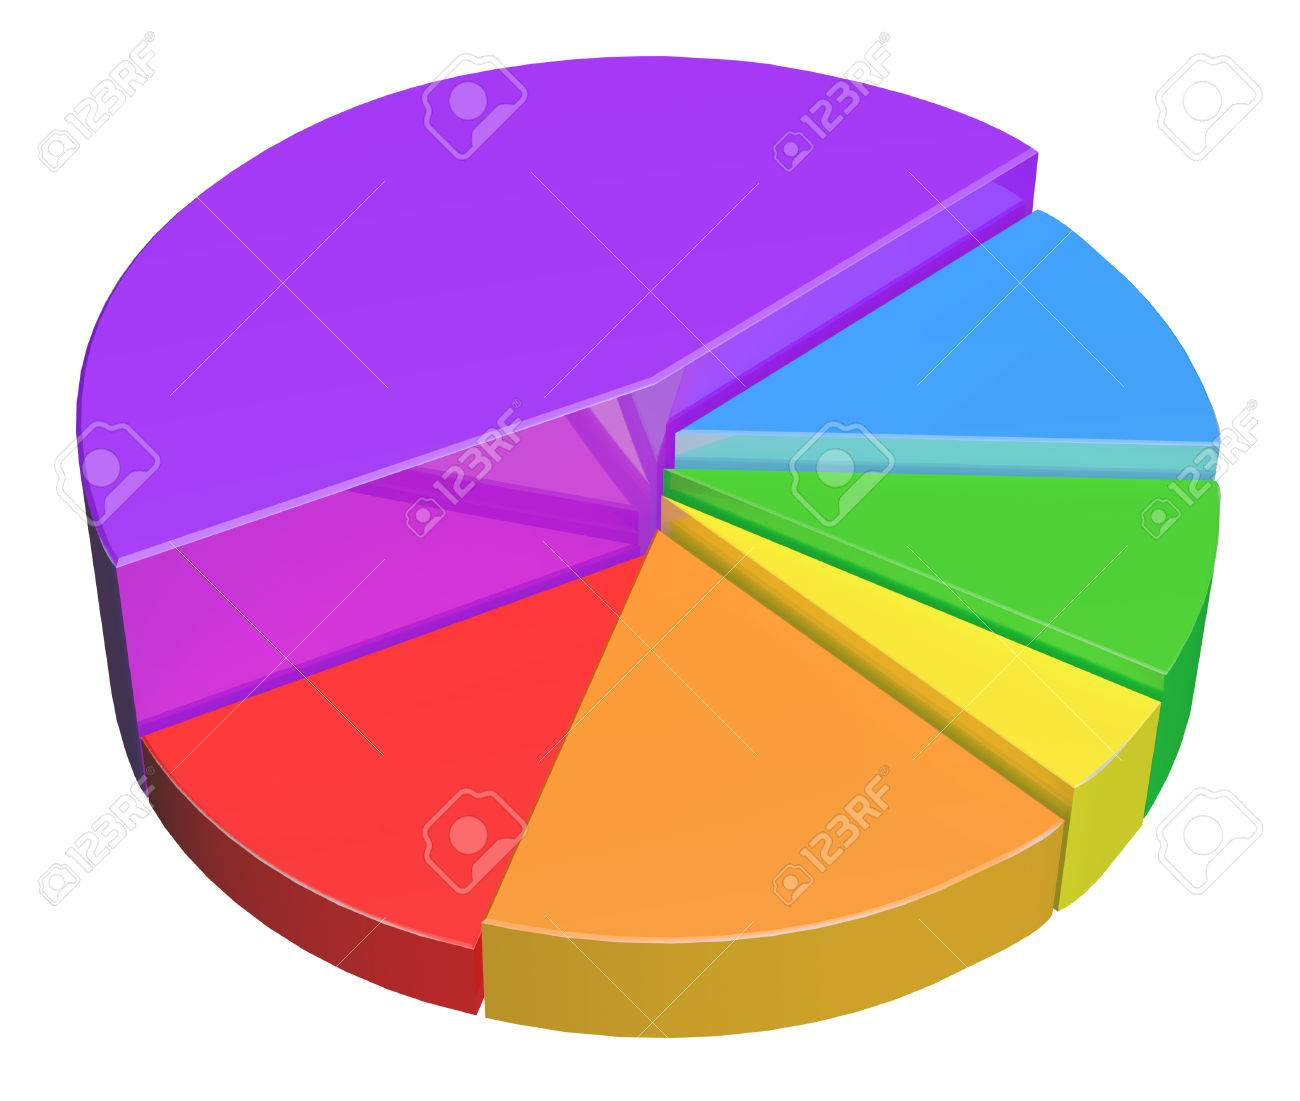 Colorful 3d Pie Chart Icon Used In Business Reports And Infographics